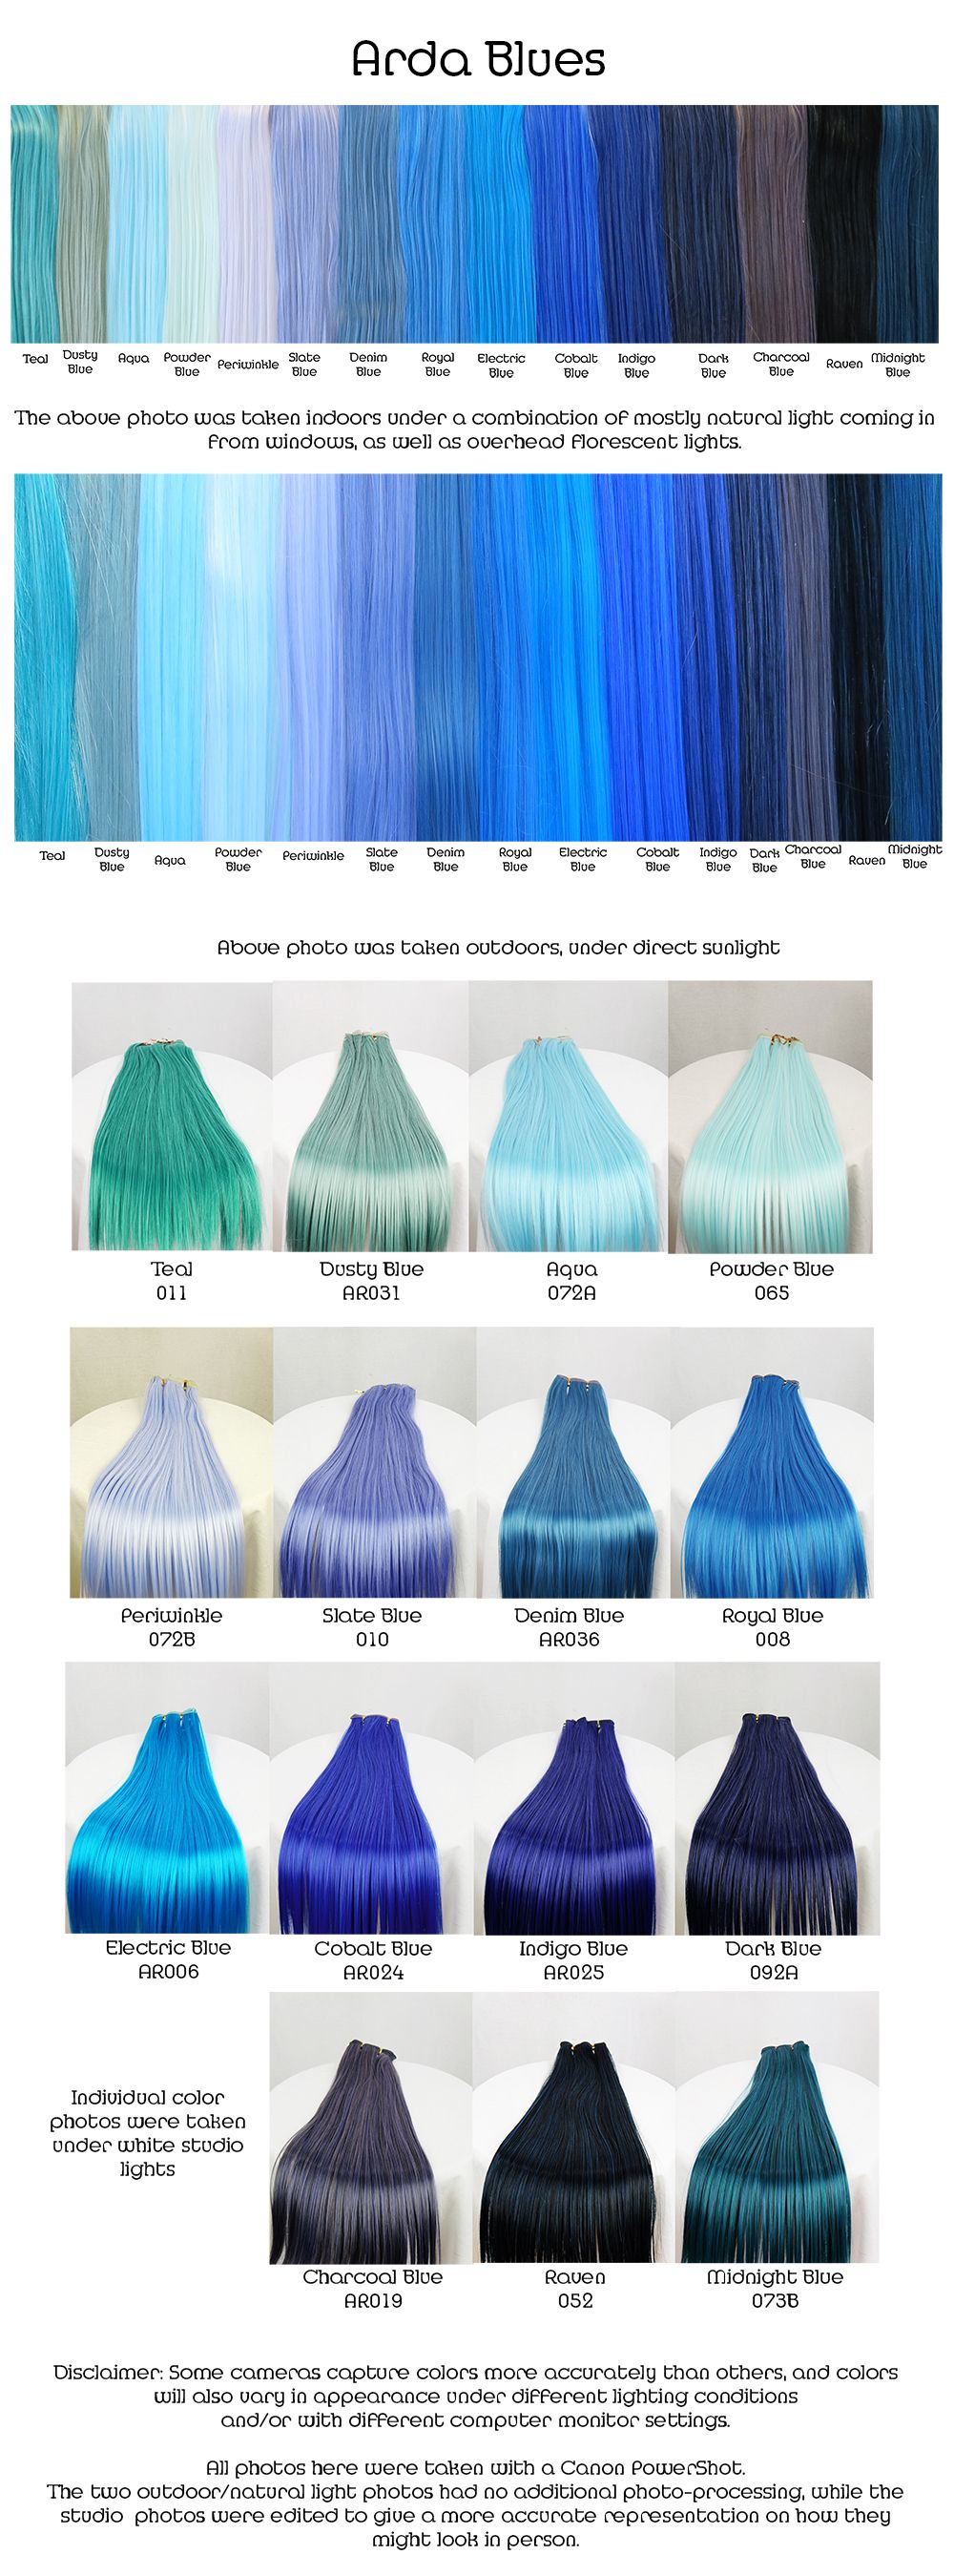 Arda blues wig fiber color pallette More Night blue hair